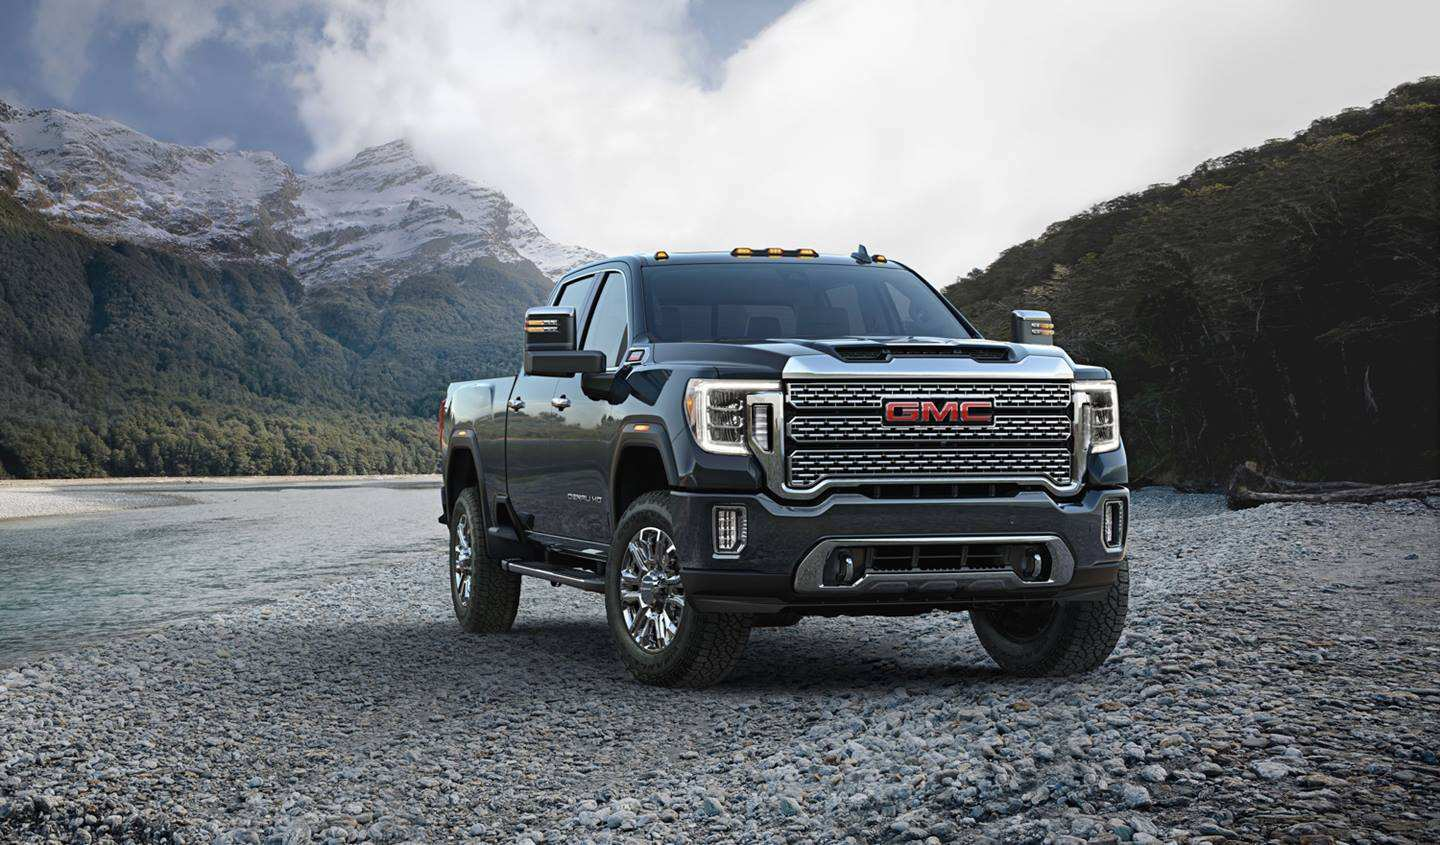 57 Best Review 2020 Gmc 2500 Interior Rumors by 2020 Gmc 2500 Interior